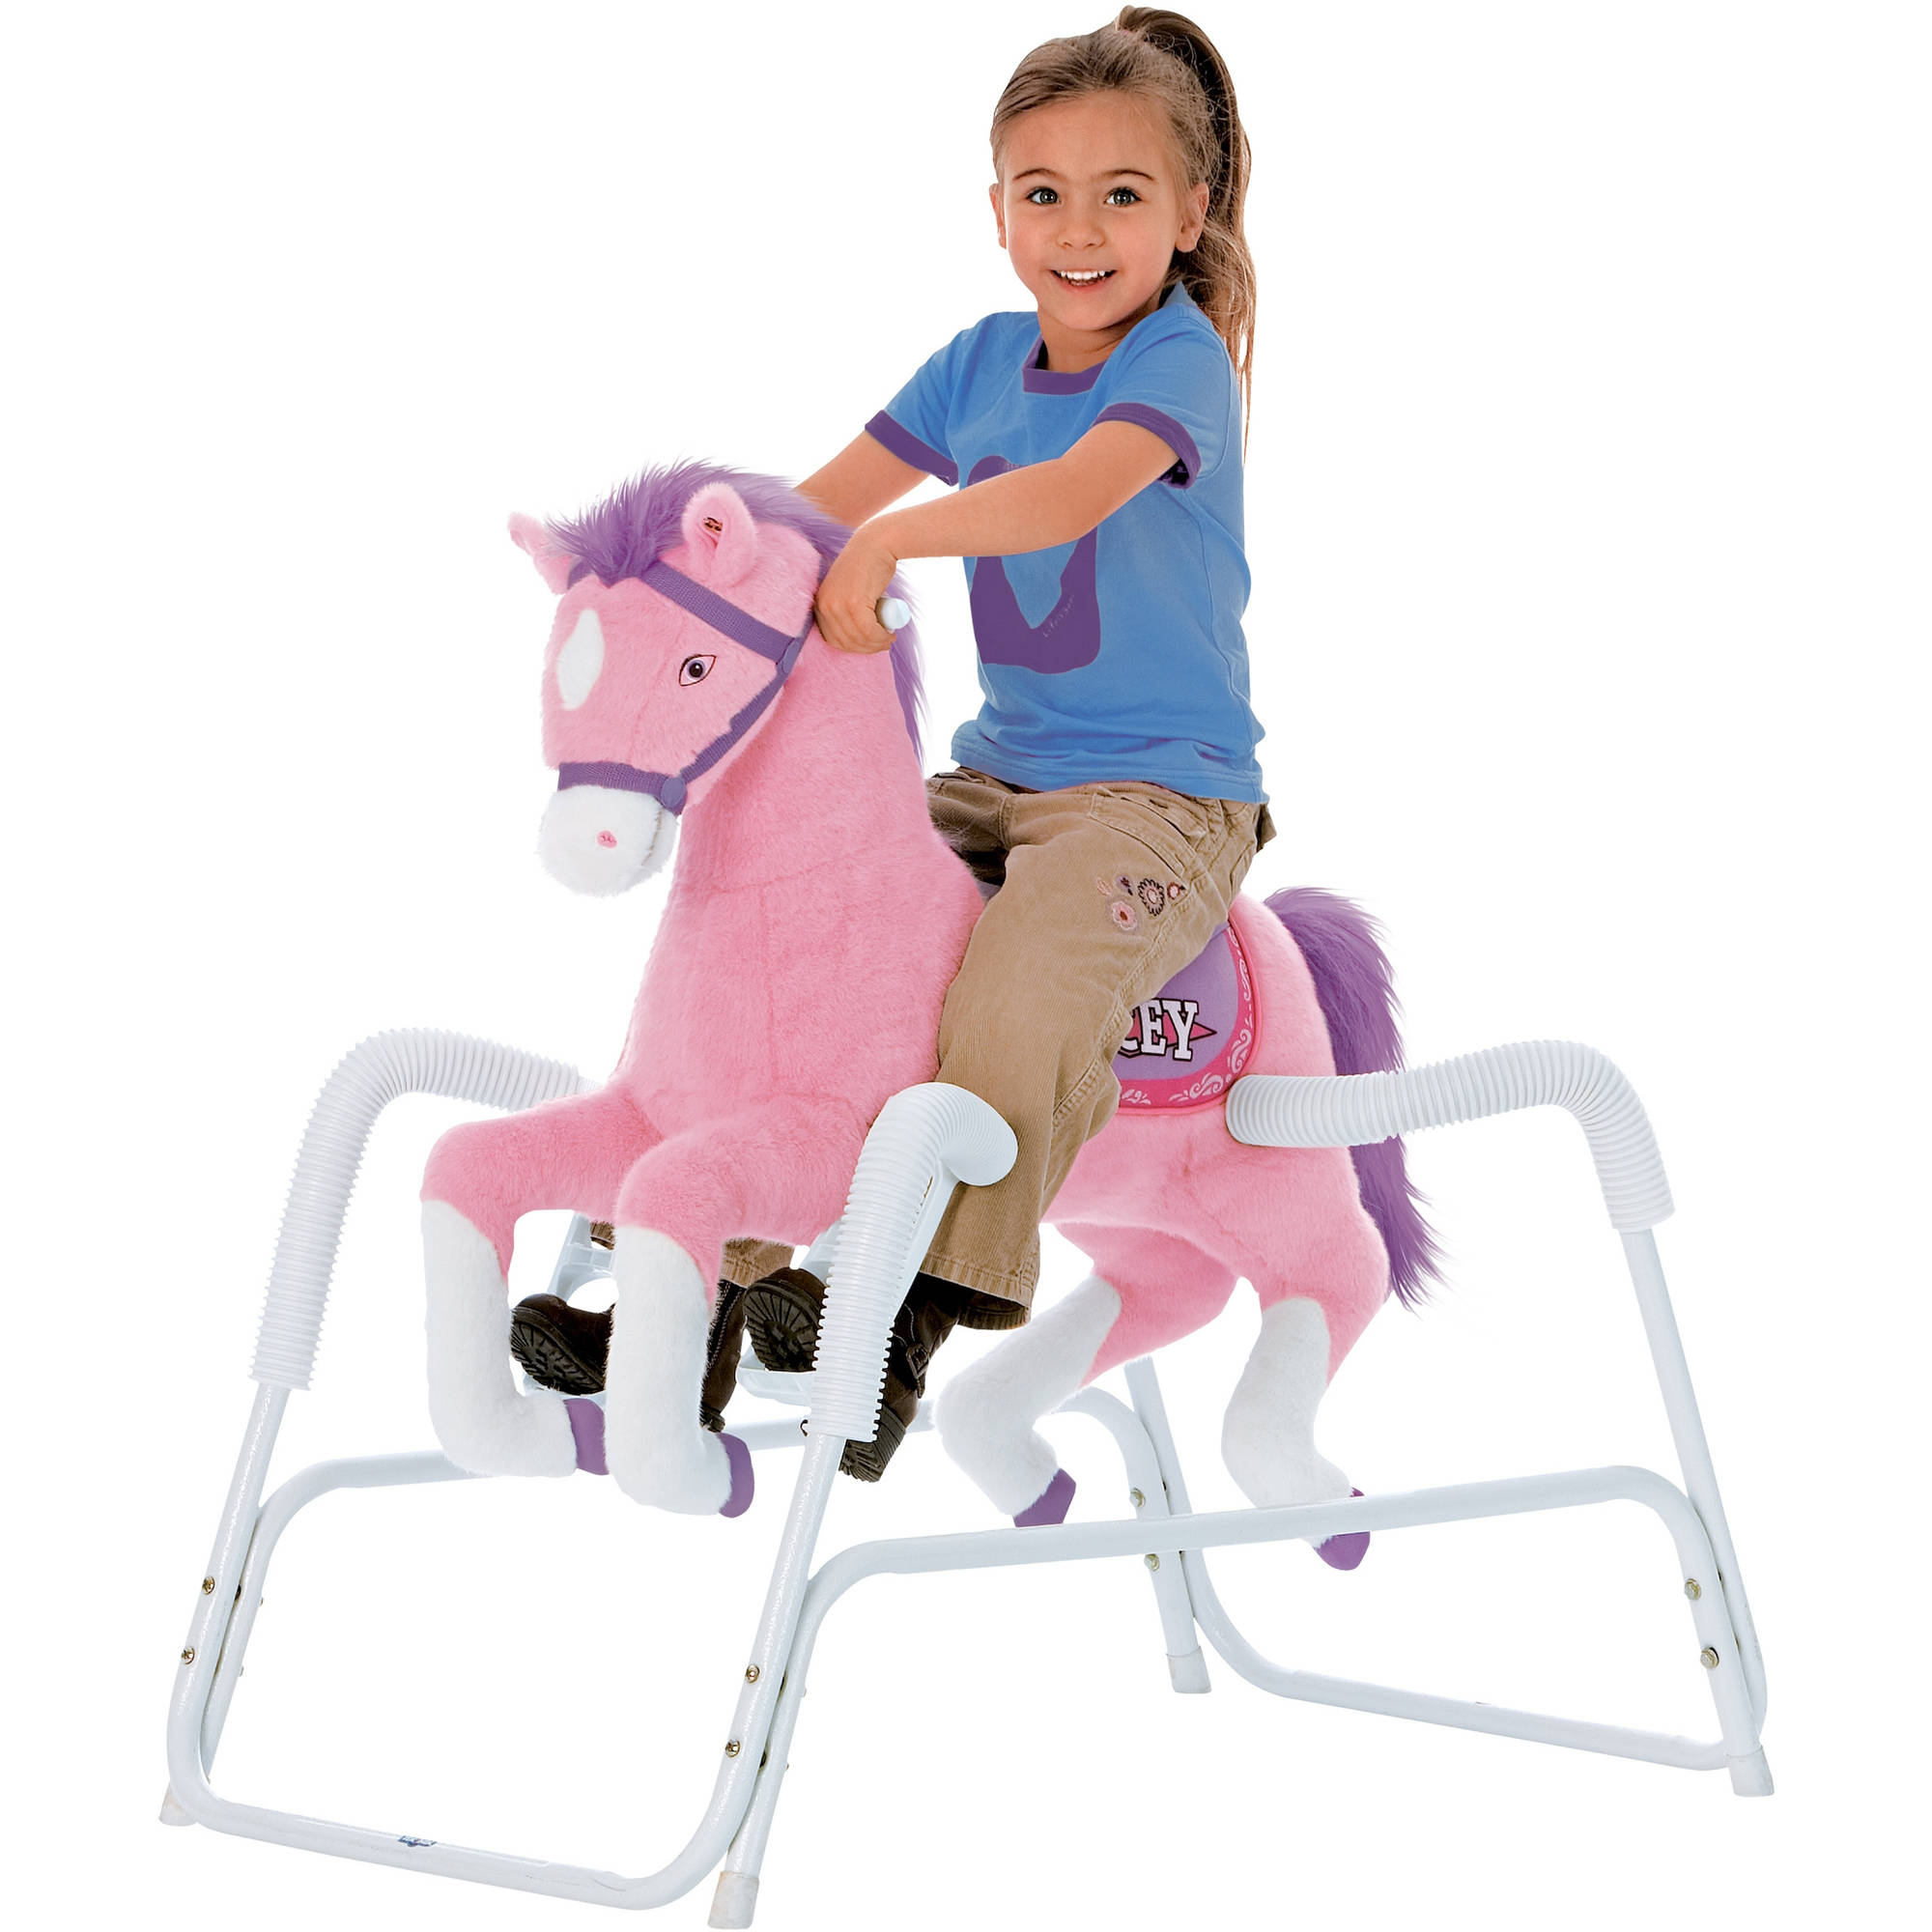 Rockin' Rider Lacey Deluxe Talking Plush Pink Spring Horse, Animated